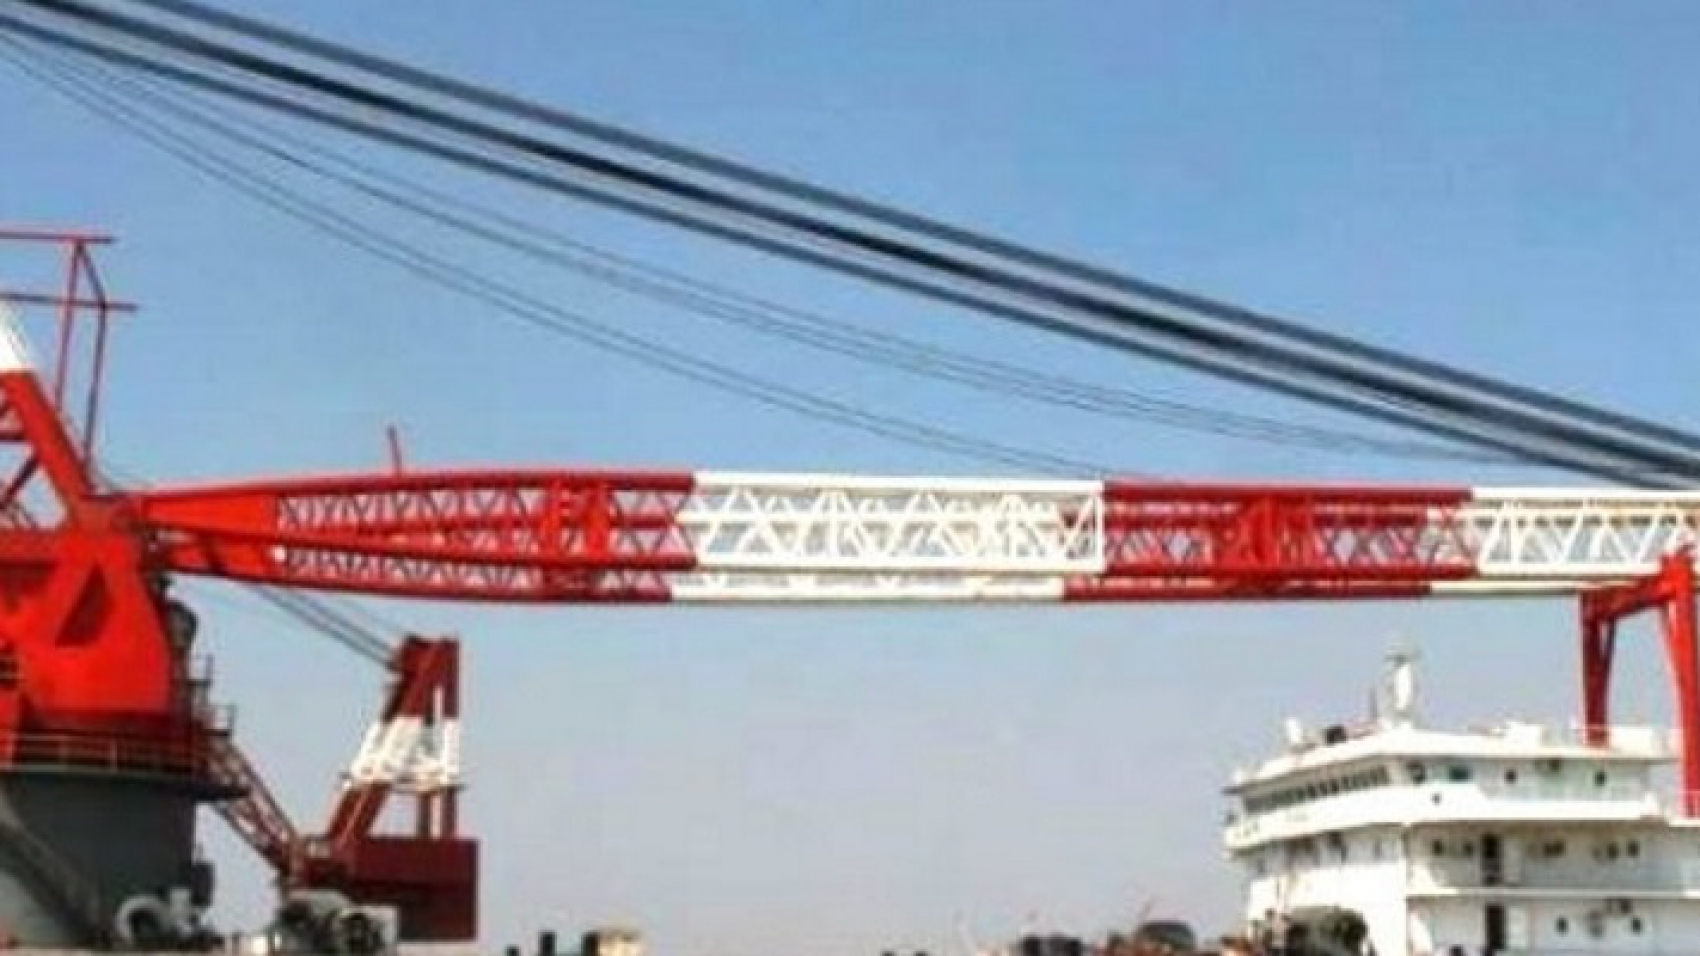 800-Ton-Crane-Vessel-for-Sale-Ref-1316-730x410